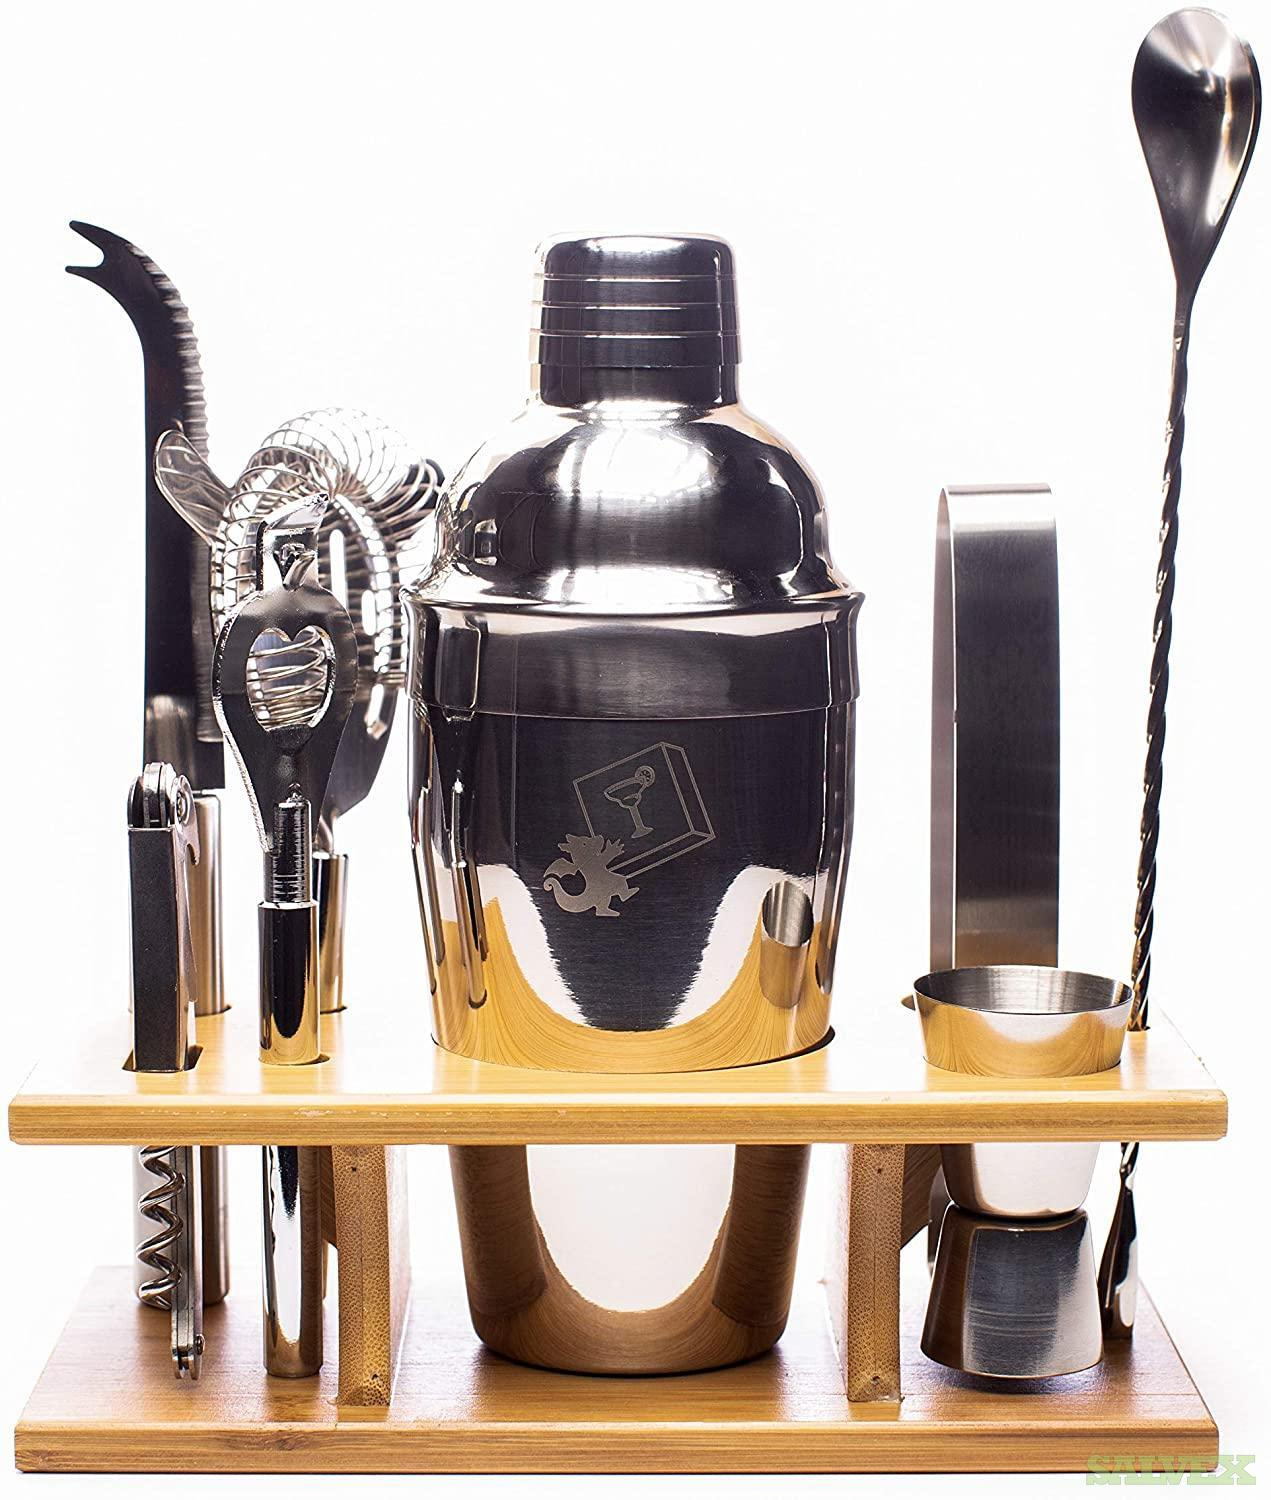 Eight Piece Stainless Steel Cocktail Shaker Set by DragonEra (1,993 sets)